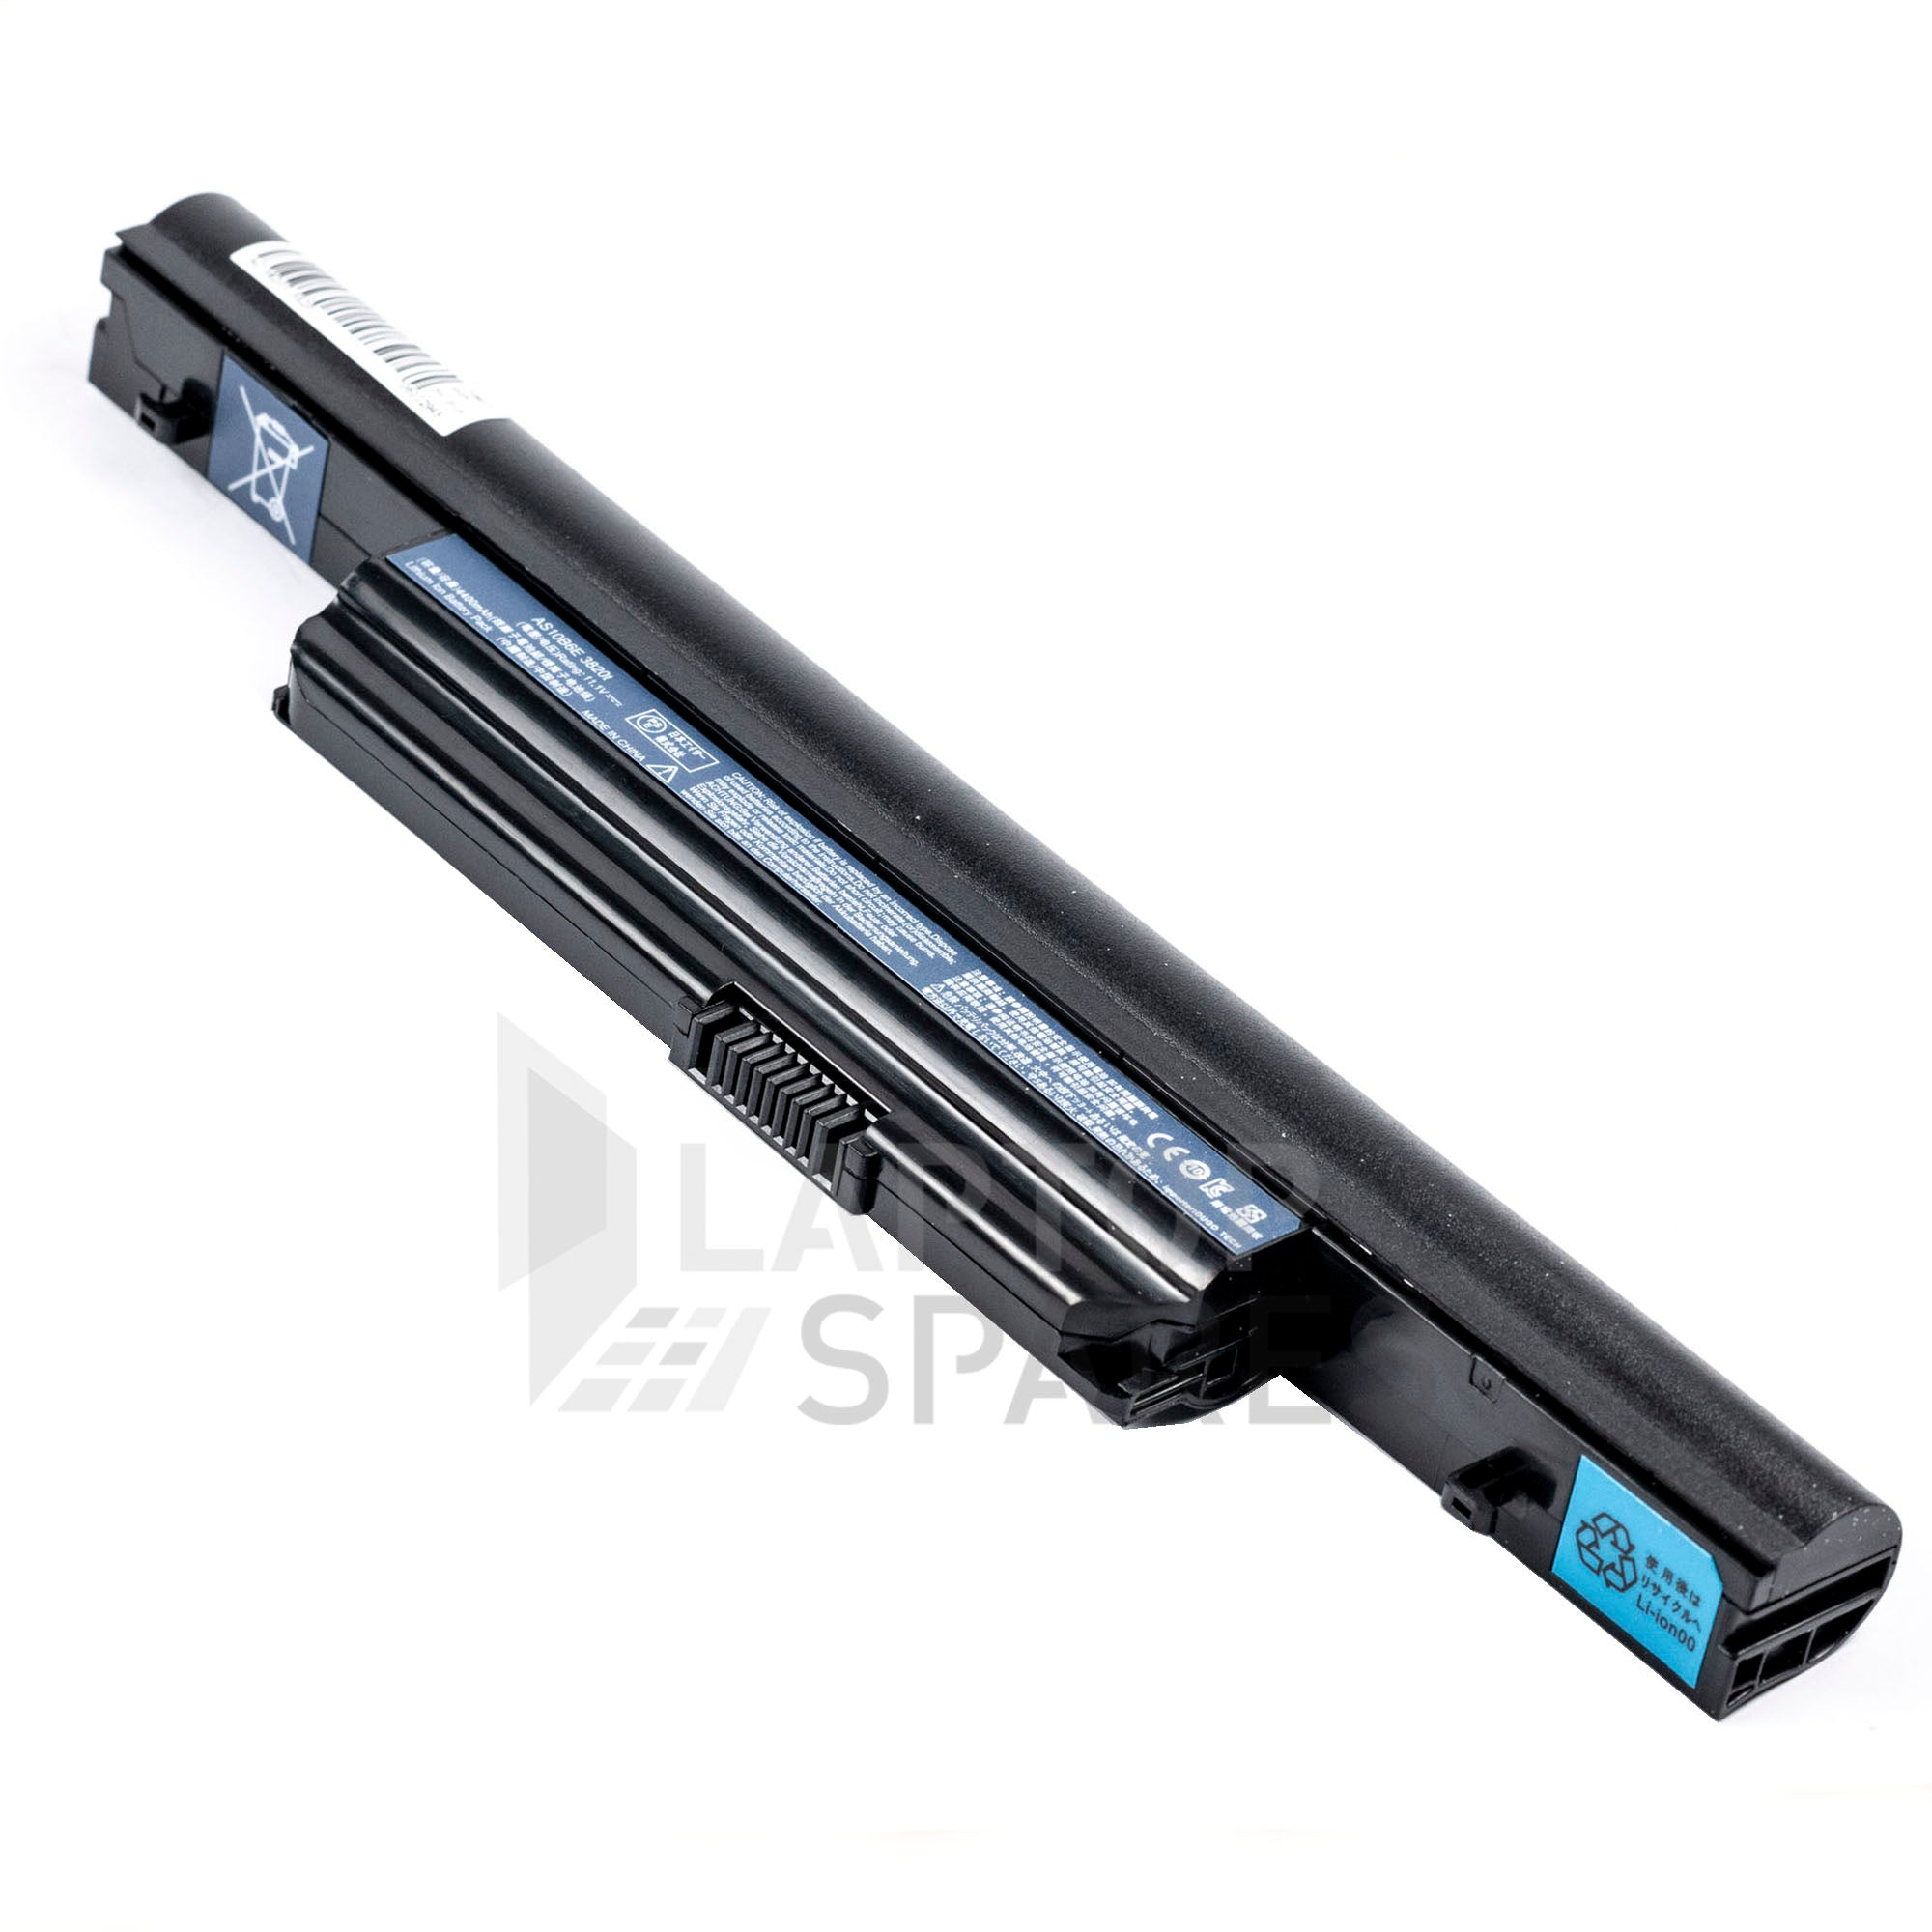 Acer Aspire TimelineX 3820T 3820TG 4400mAh 6 Cell Battery